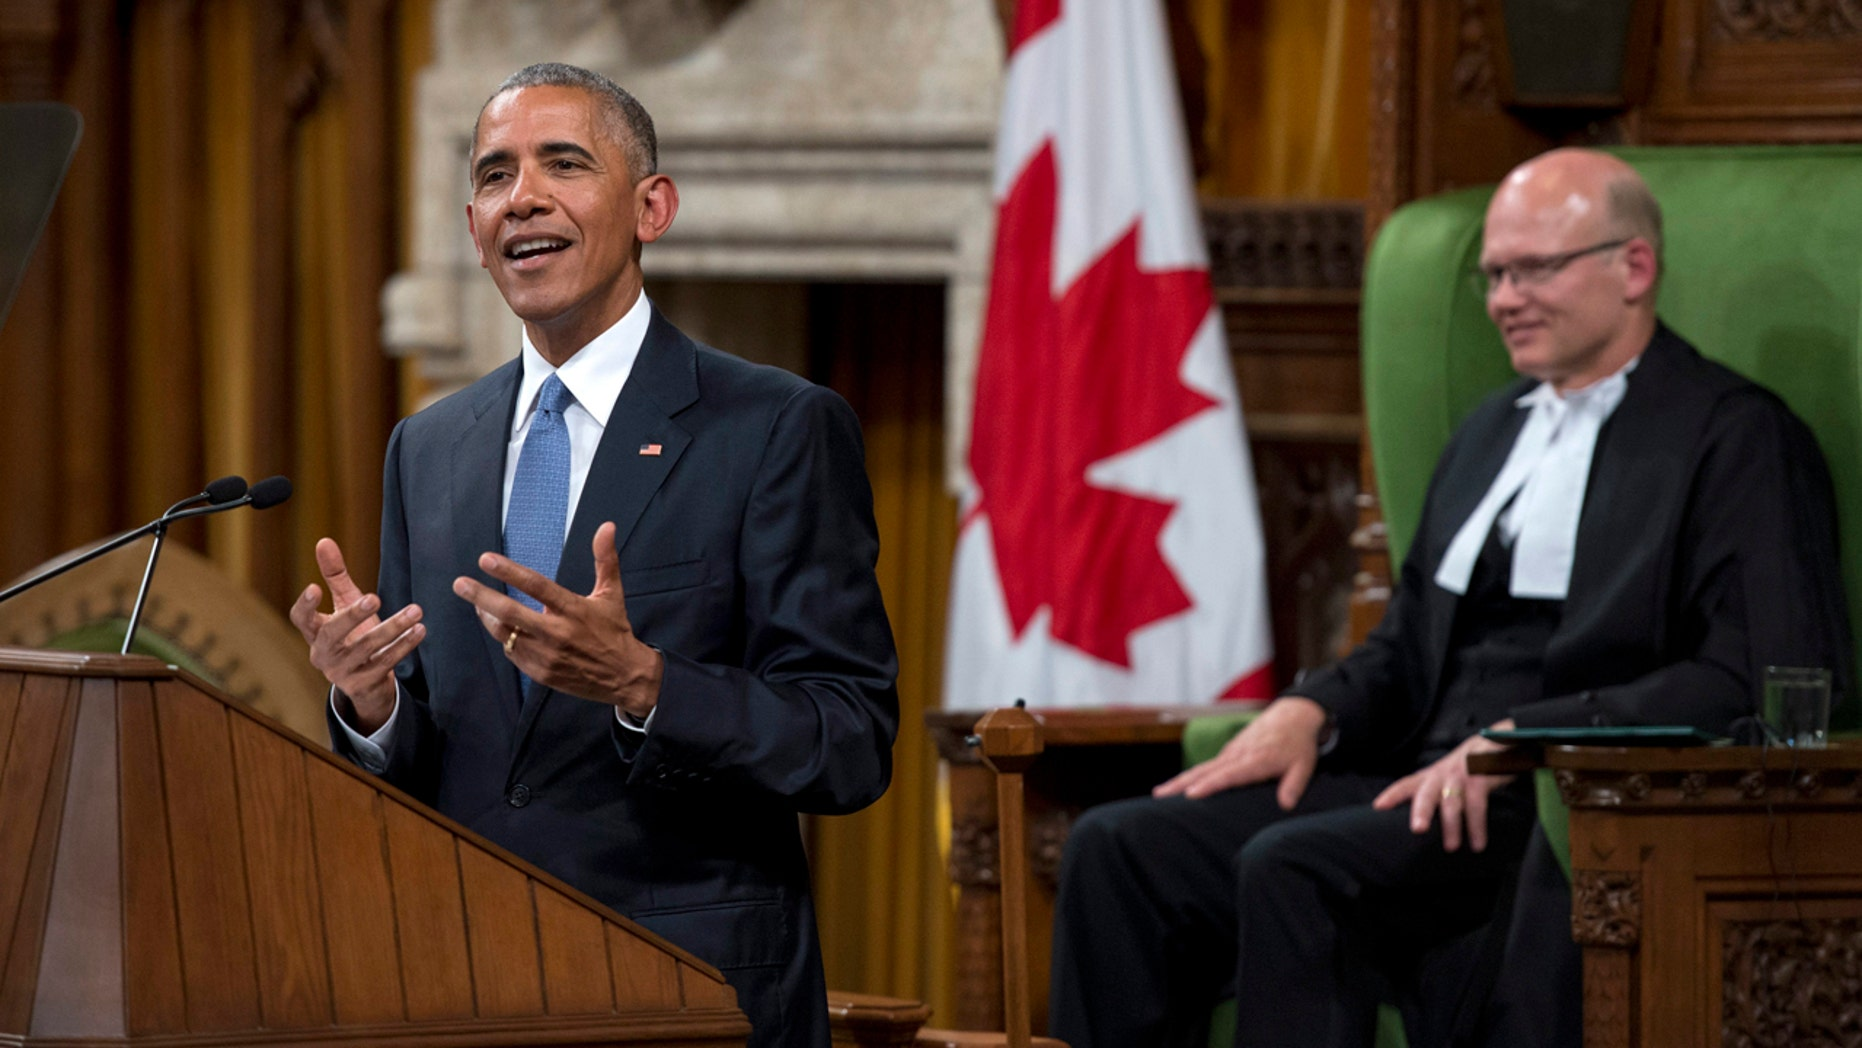 June 29, 2016: U.S. President Barack Obama addresses the Canadian Parliament in the House of Commons in Ottawa, as House Speaker Geoff Regan looks on.